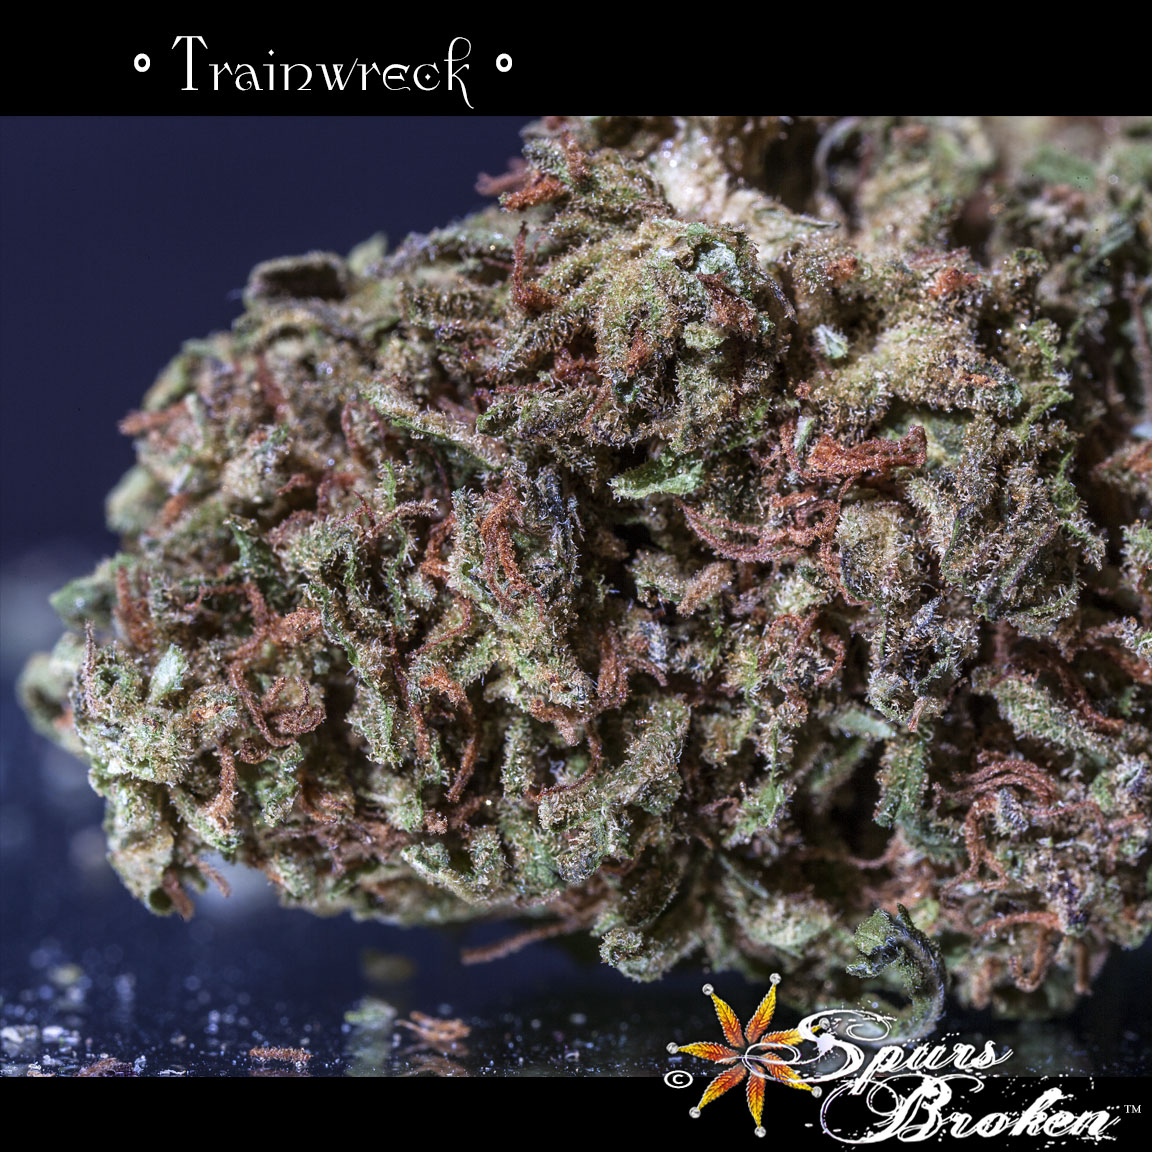 Trainwreck - Cannabis Macro Photography by Spurs Broken (Robert R. Sanders